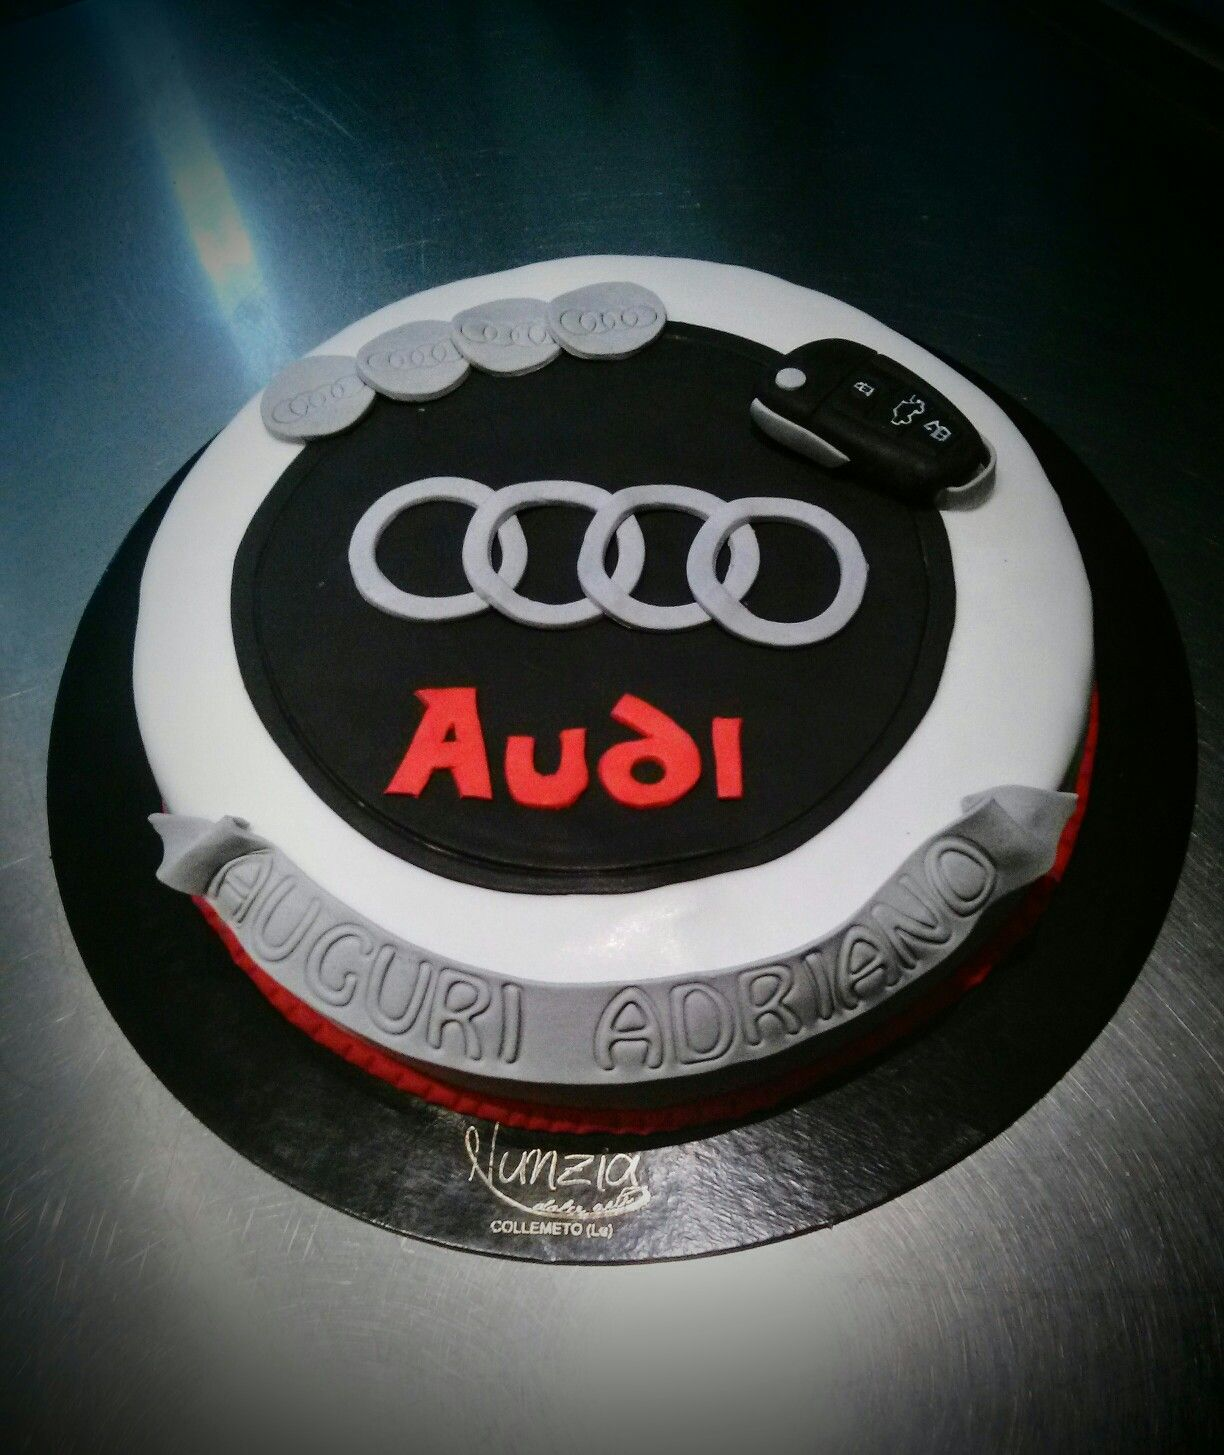 Kuchen Deko Name Torta Decorata Cake Design Audi Cake Black Cars In 2019